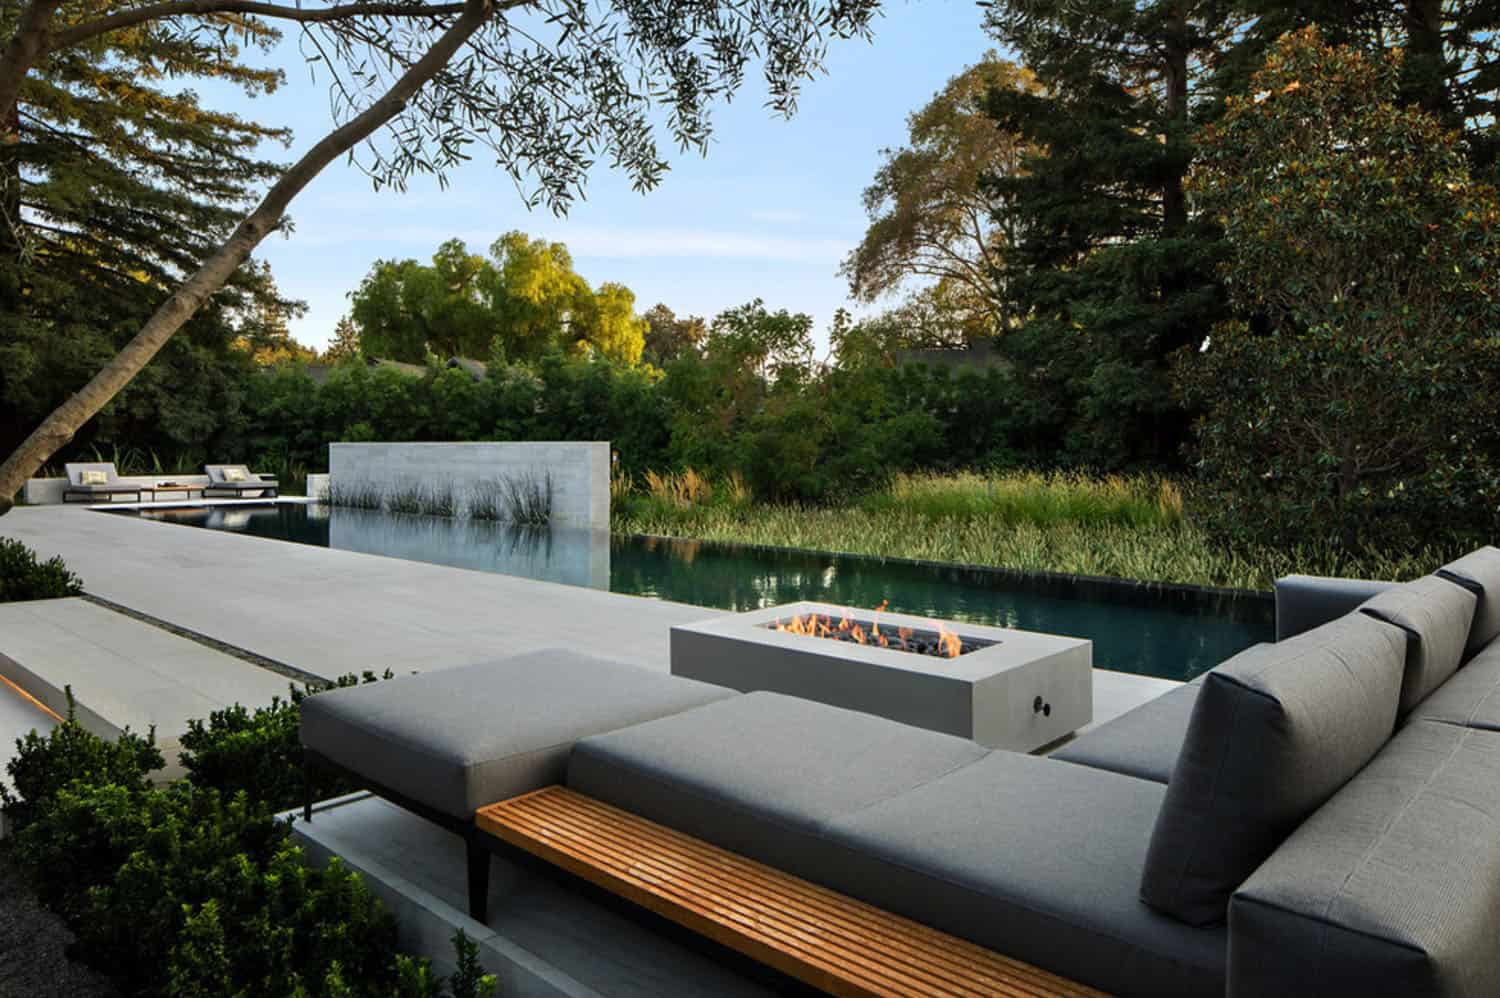 backyard-luxury-with-view-of-infinity-pool